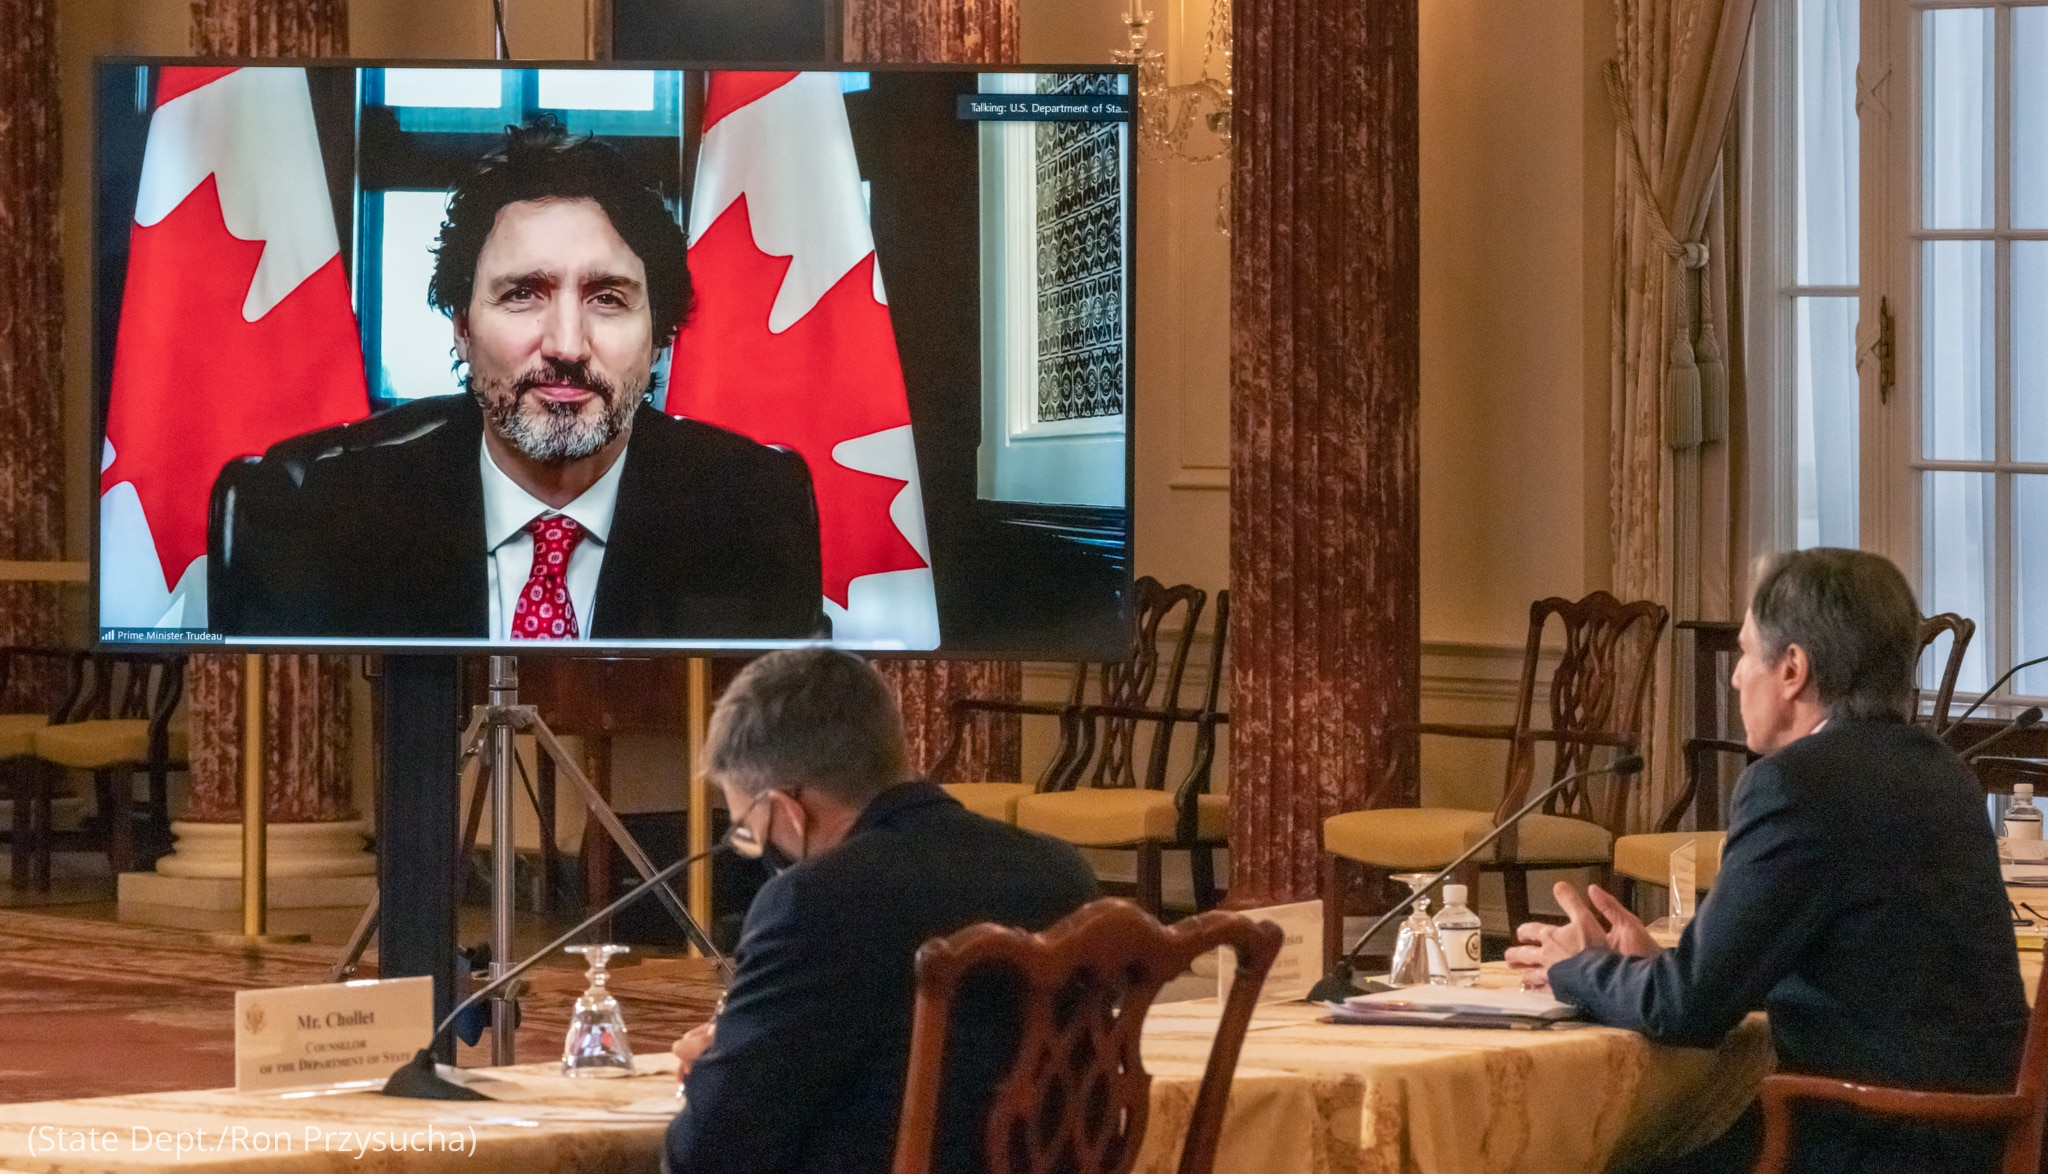 Secretary of State Antony Blinken sitting at table while interacting with Justin Trudeau through screen as another man takes notes (State Dept./Ron Przysucha)